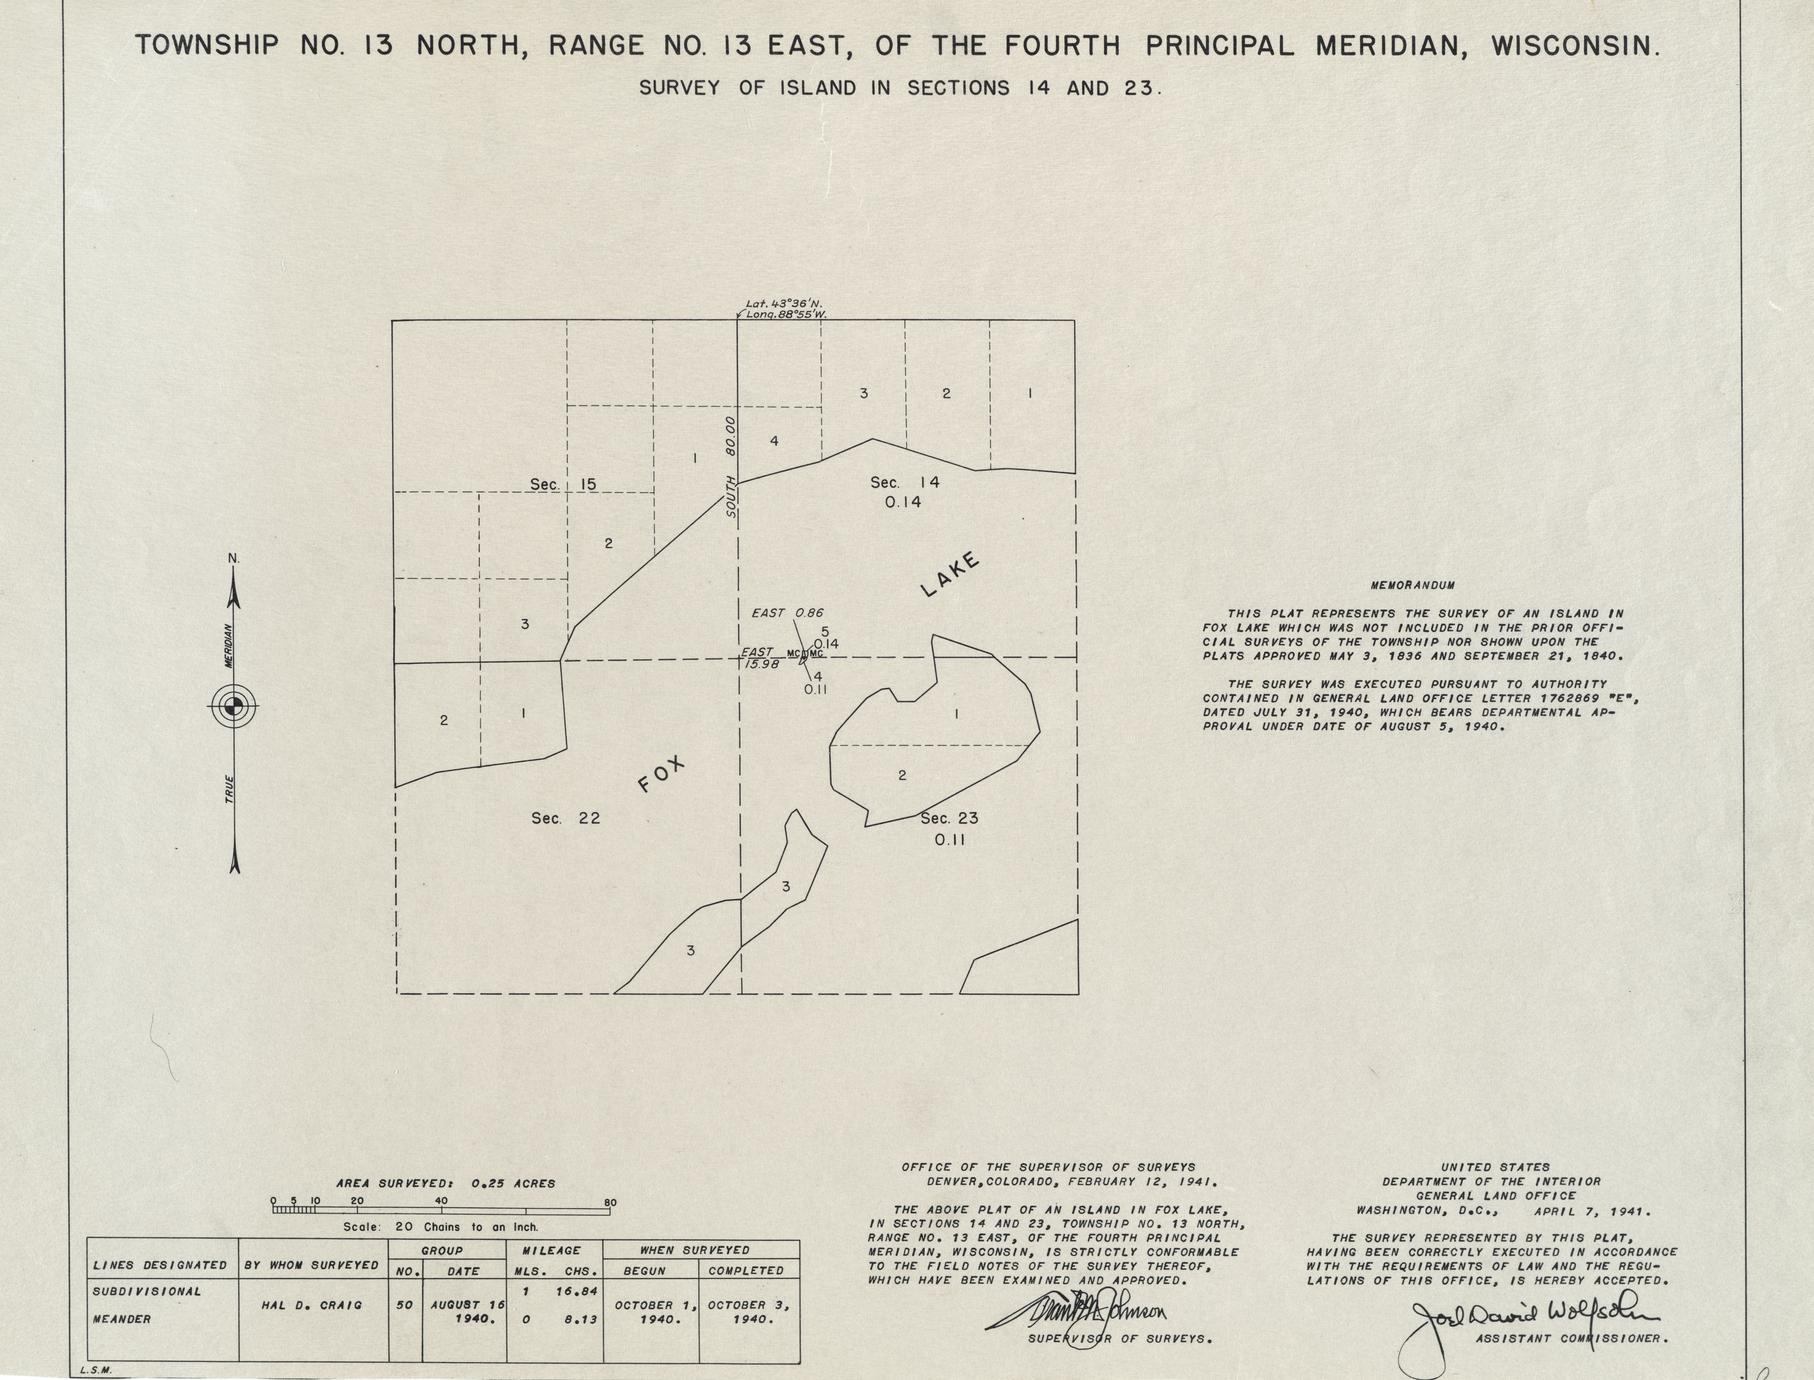 [Public Land Survey System map: Wisconsin Township 13 North, Range 13 East]